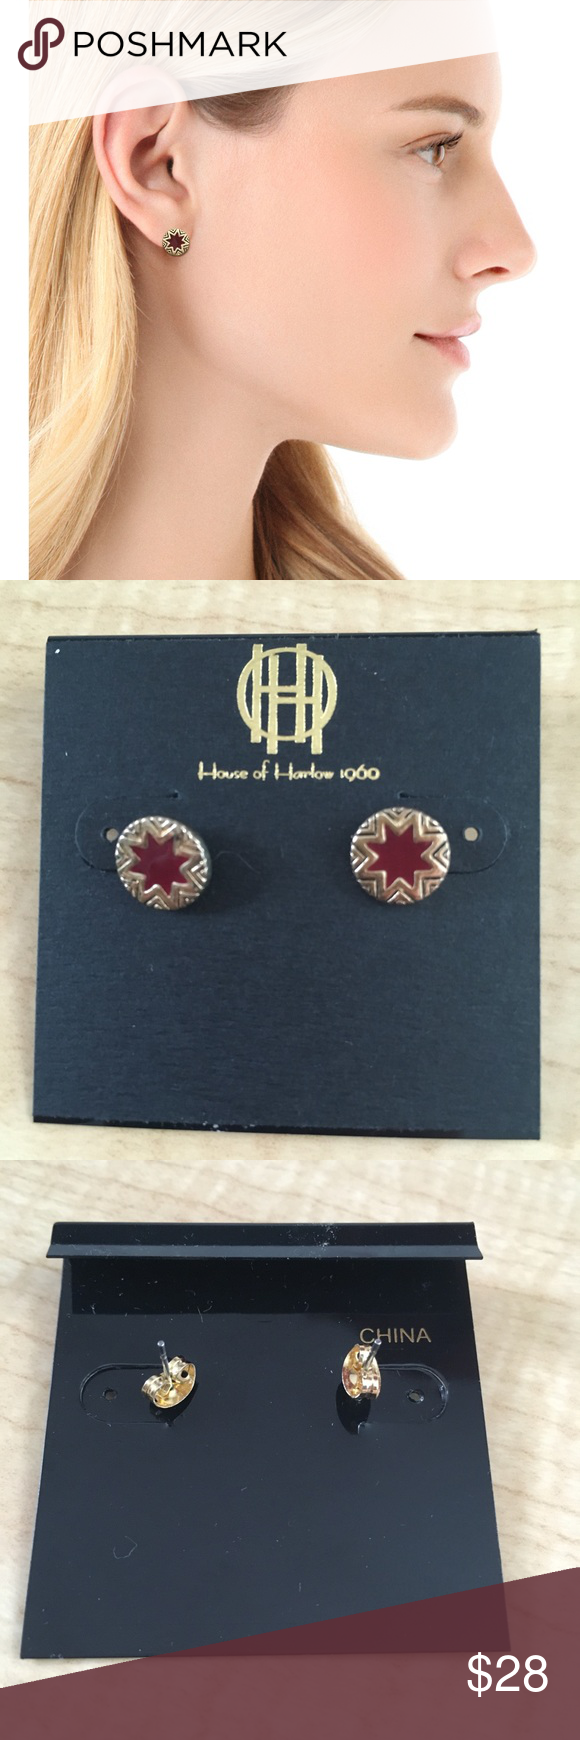 House of Harlow Mini Starburst Earrings Cranberry House of Harlow Mini Starburst Earrings Cranberry - plastic HoH backing included on request House of Harlow 1960 Jewelry Earrings